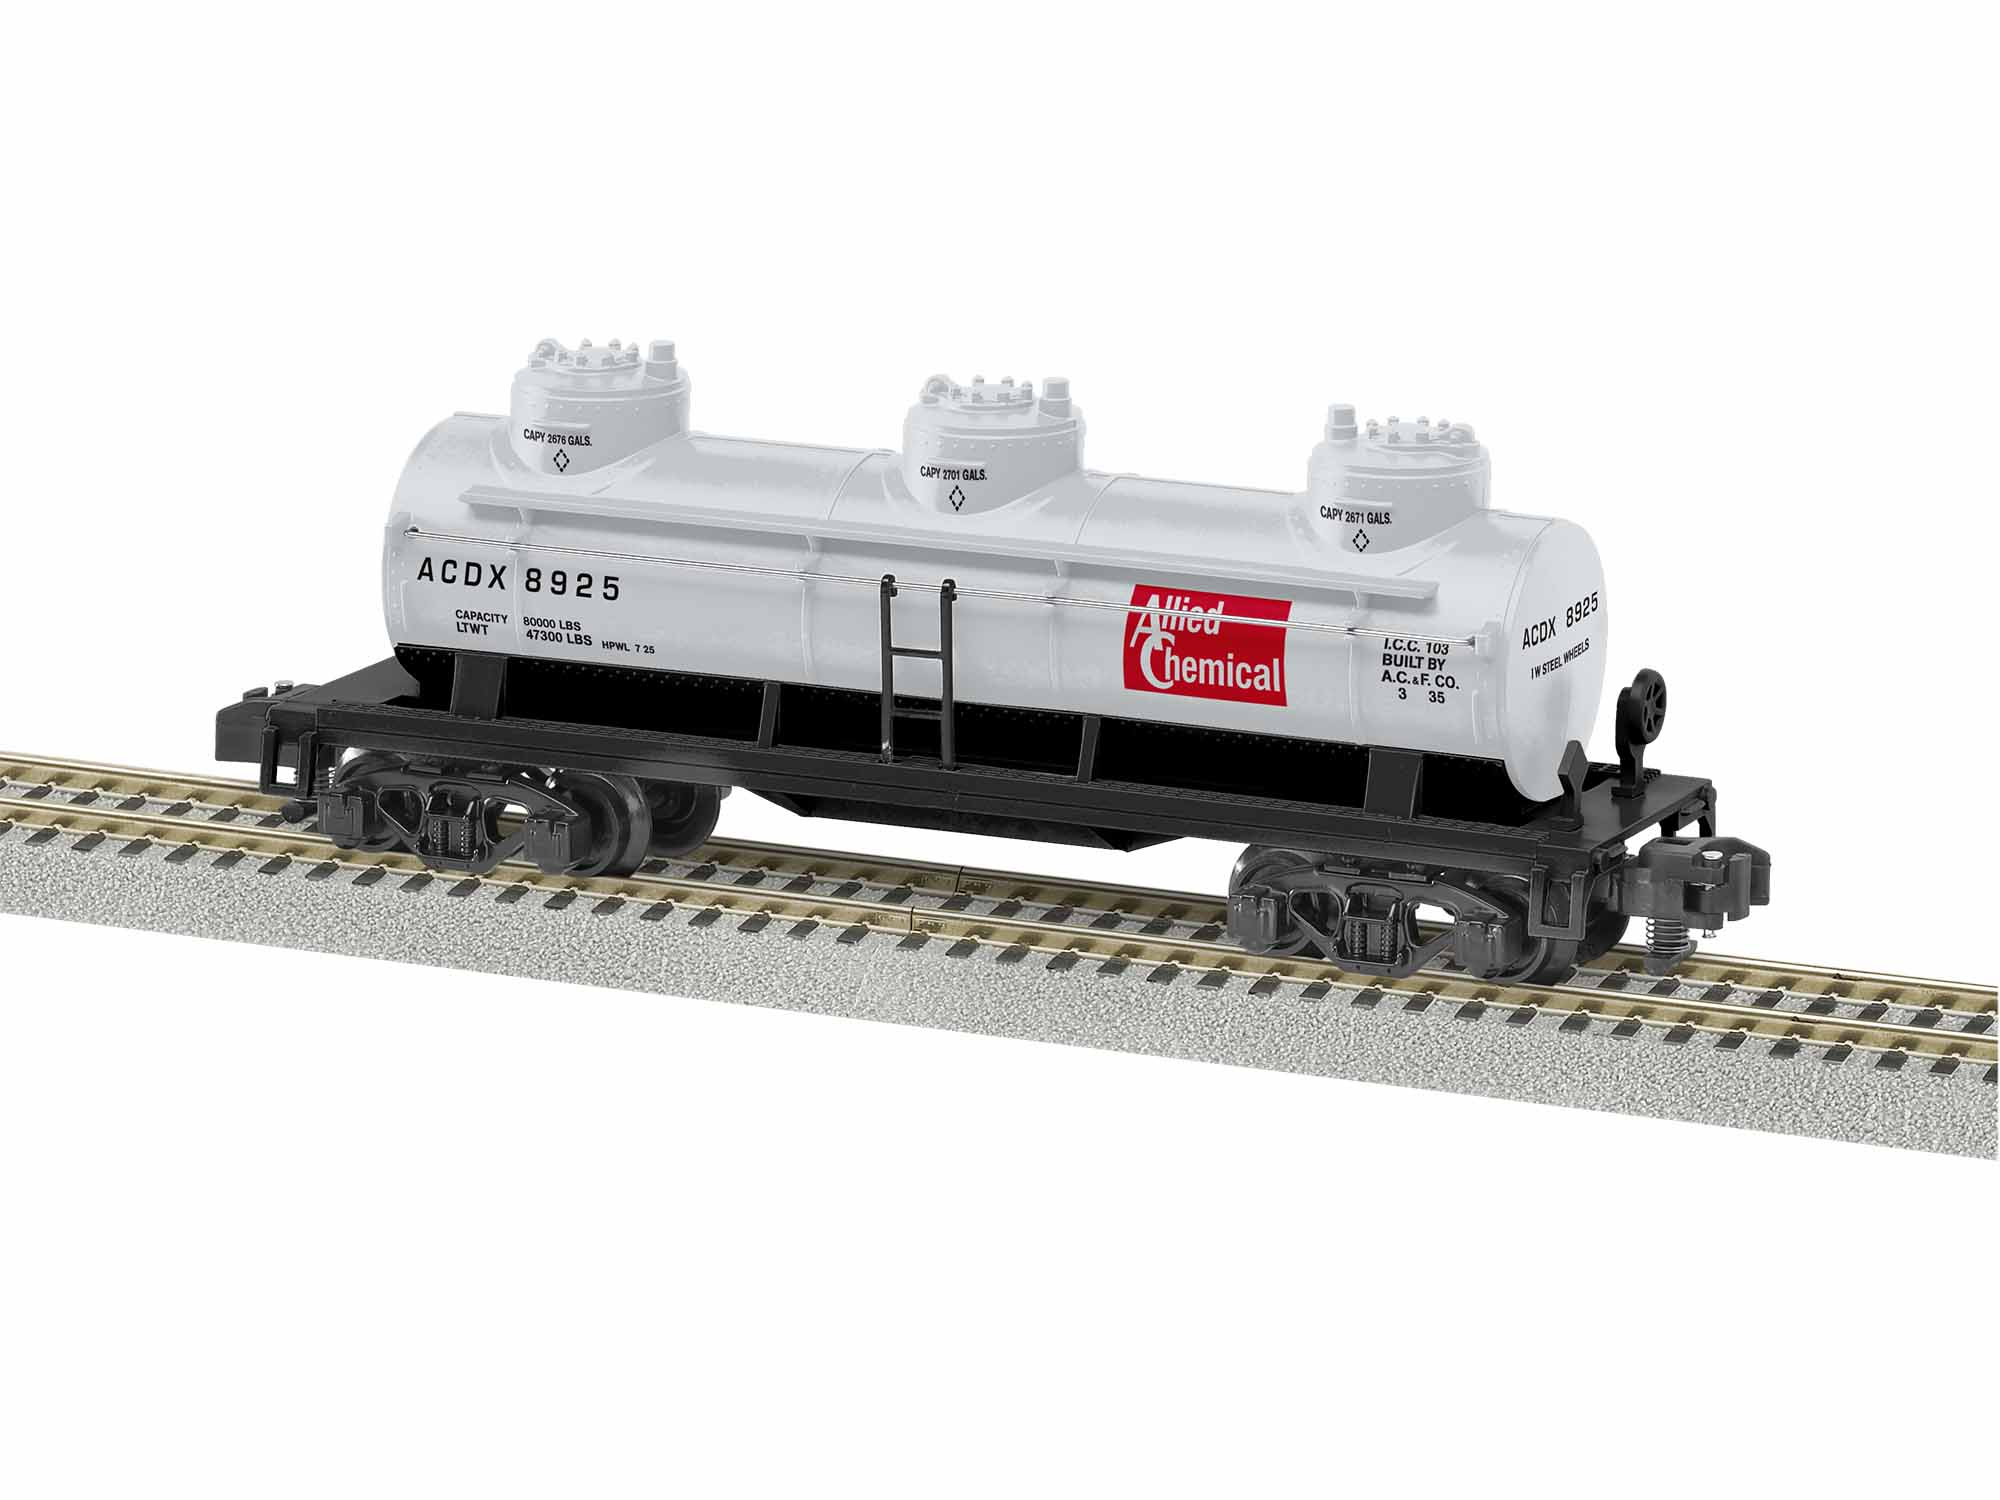 LNL1919272 Lionel S AF 3-Dome Tankcar,Allied Chemical #8925